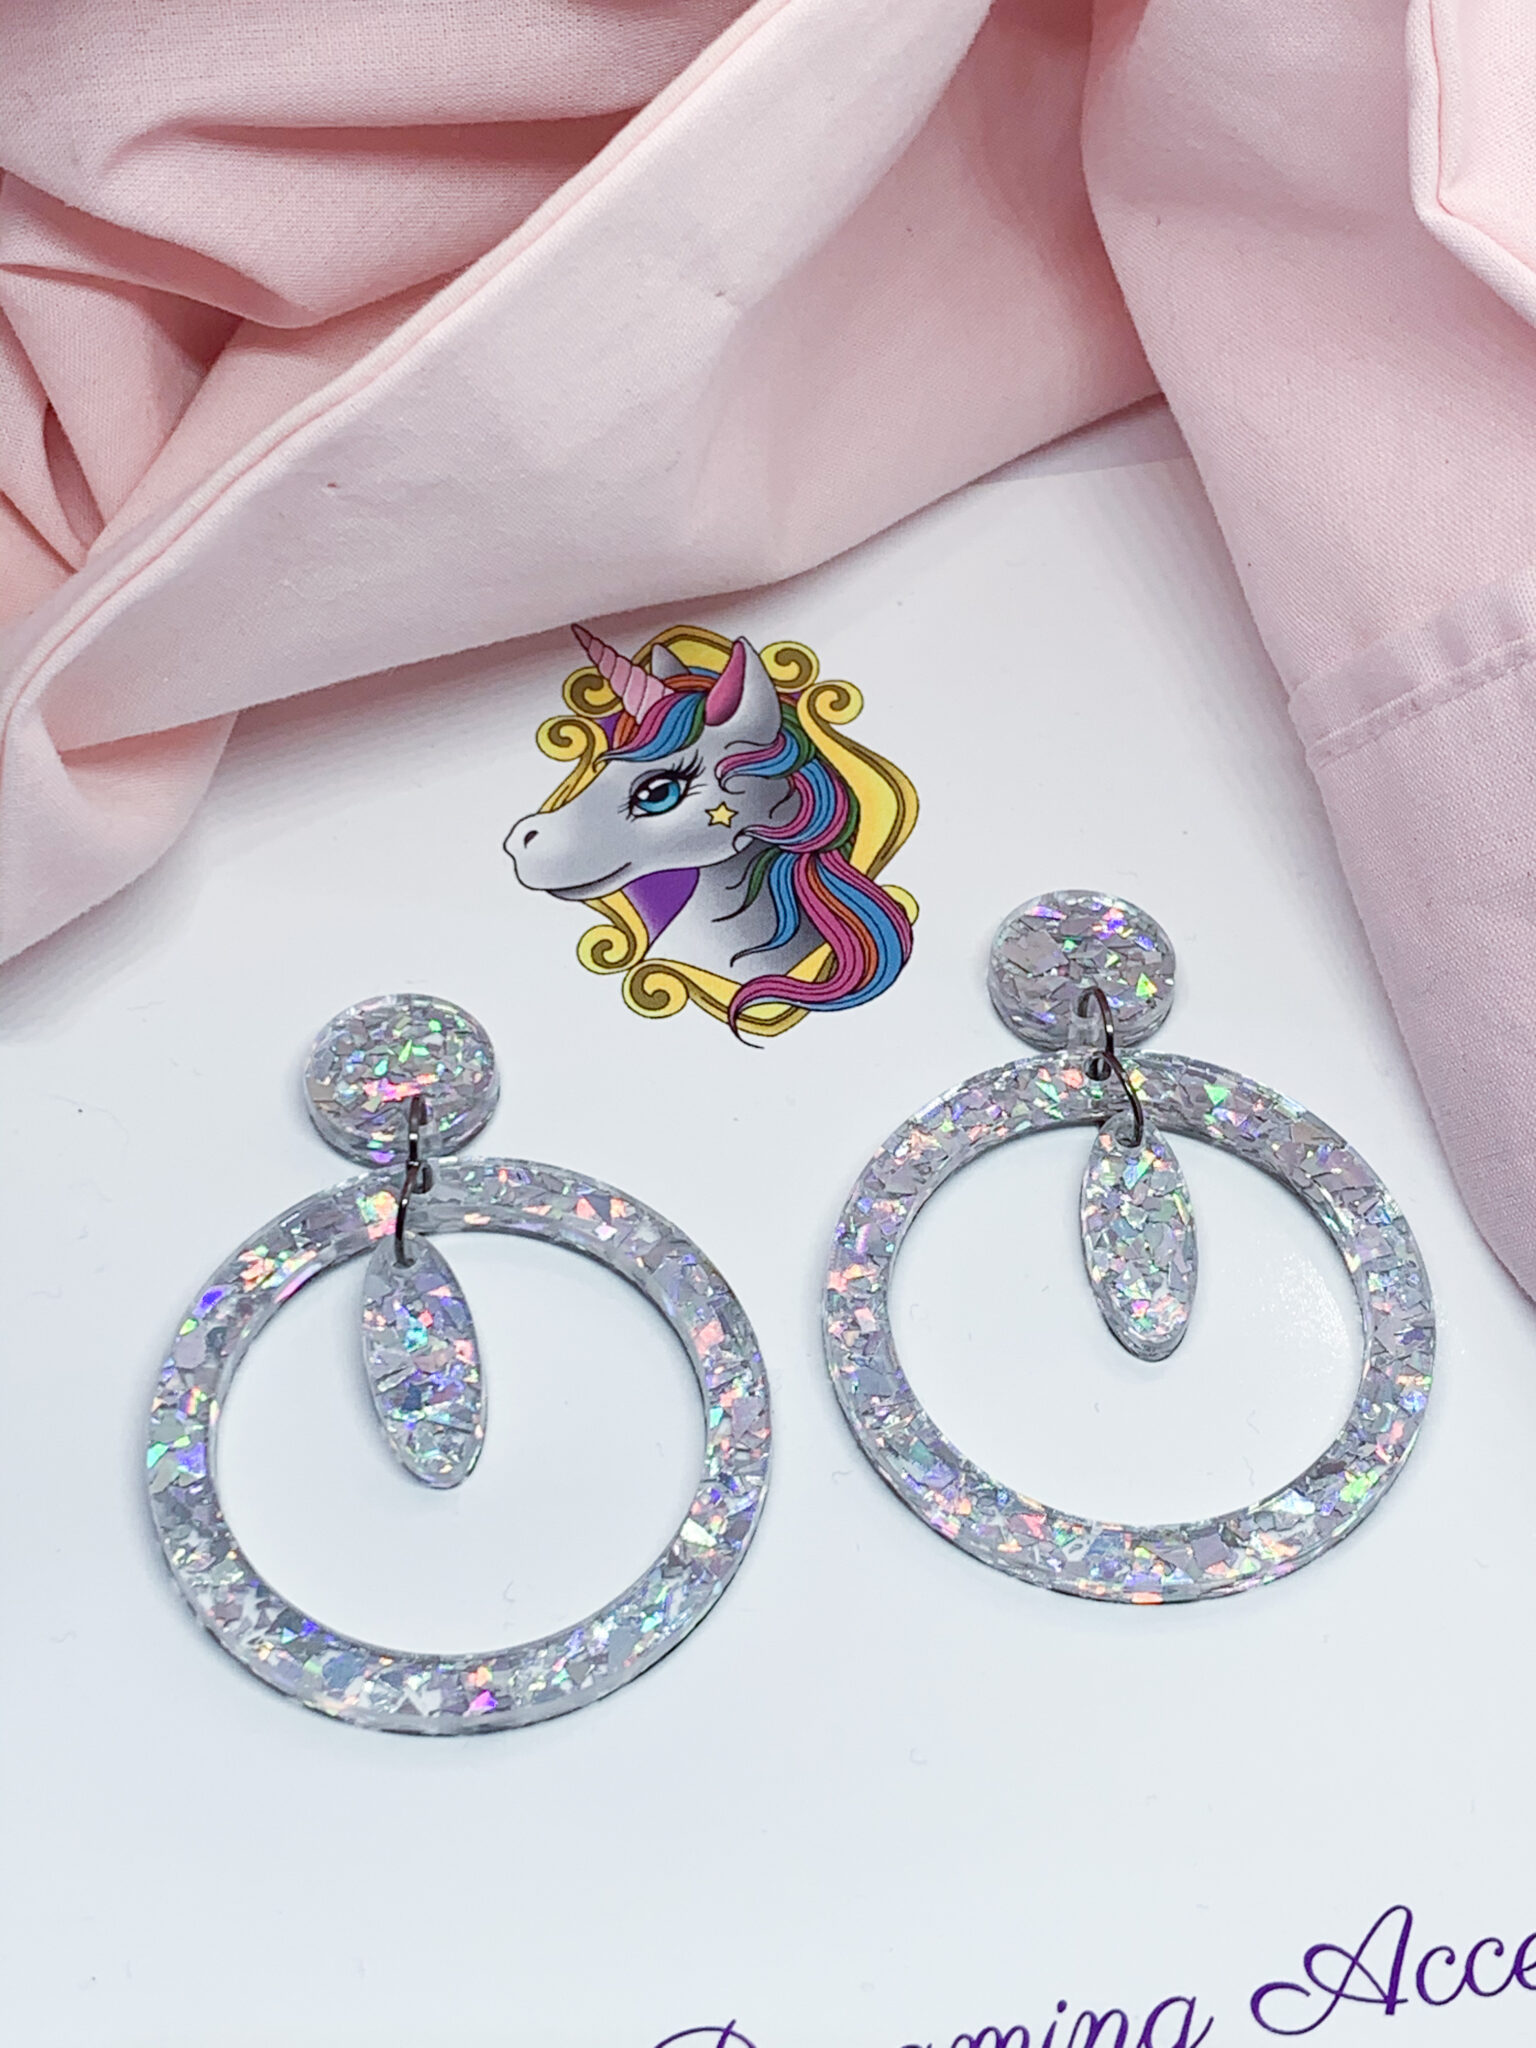 Unicorn-Dreaming-Accessories